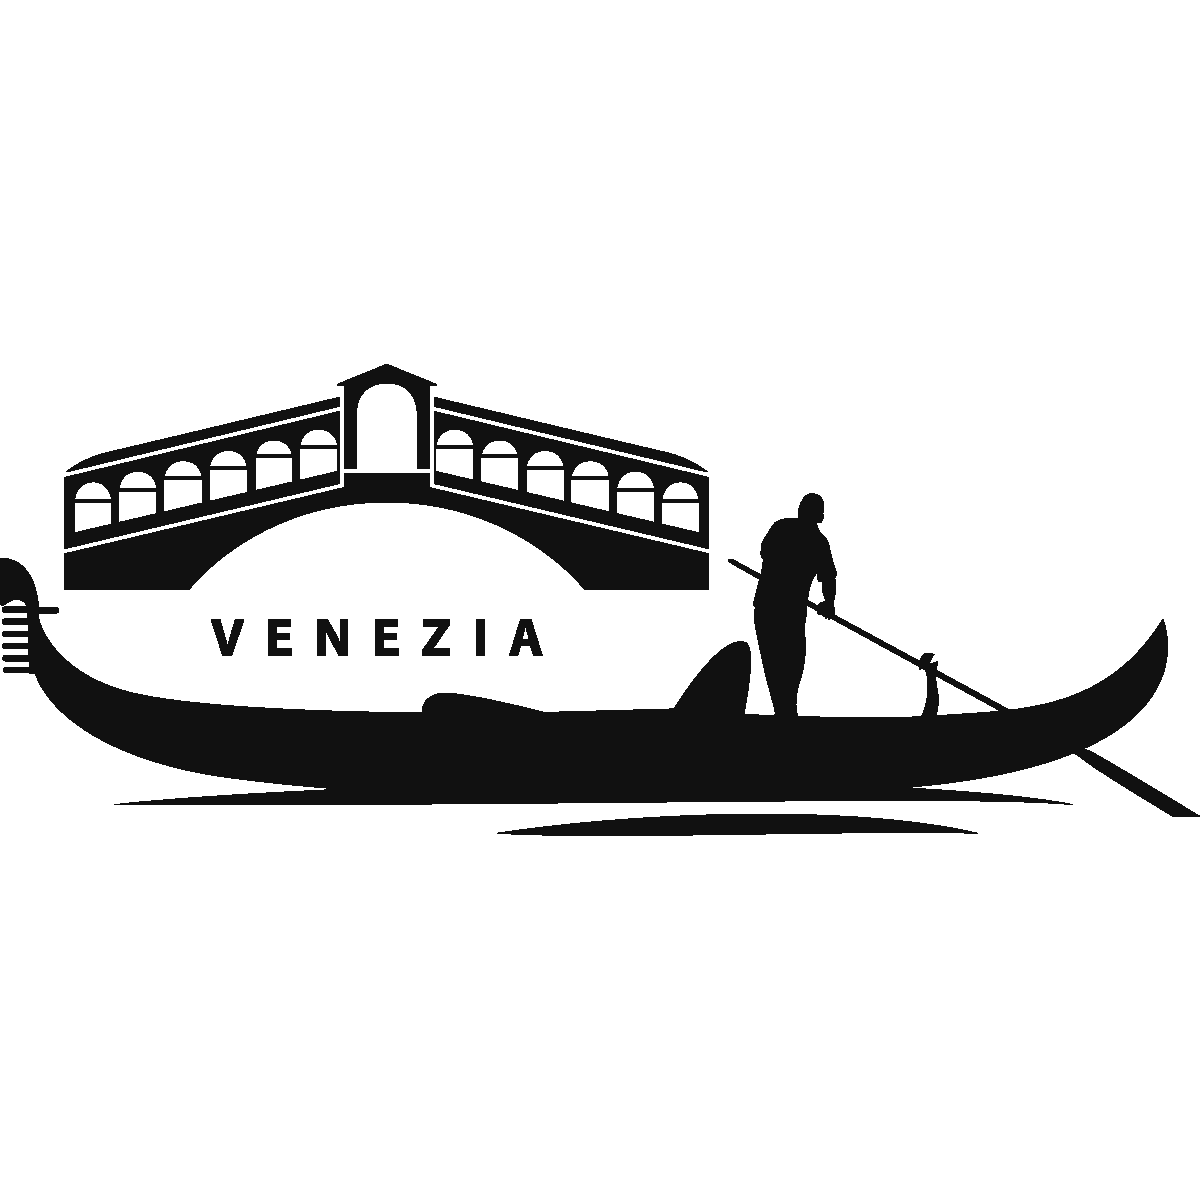 Wall Decal Venice Gondola With Bridge Xml 420 372 3357 10396 on 8 dogs illustration